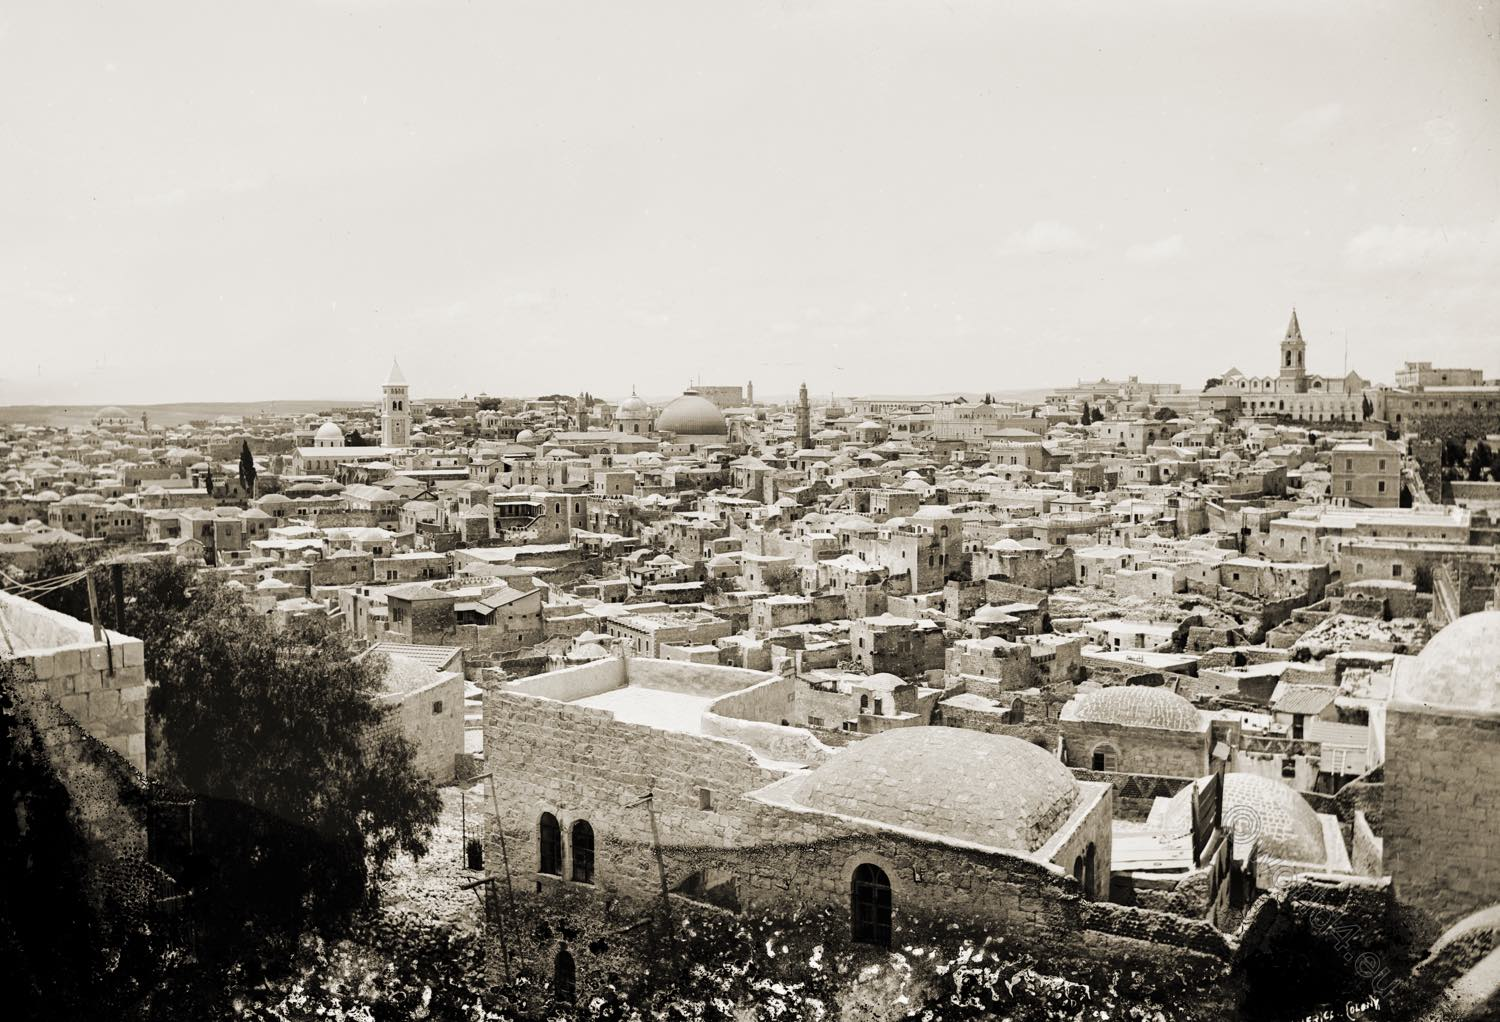 Jerusalem, extensive view, Photograph, Collection, cityscapes, Palestine, Israel, Holy Land,